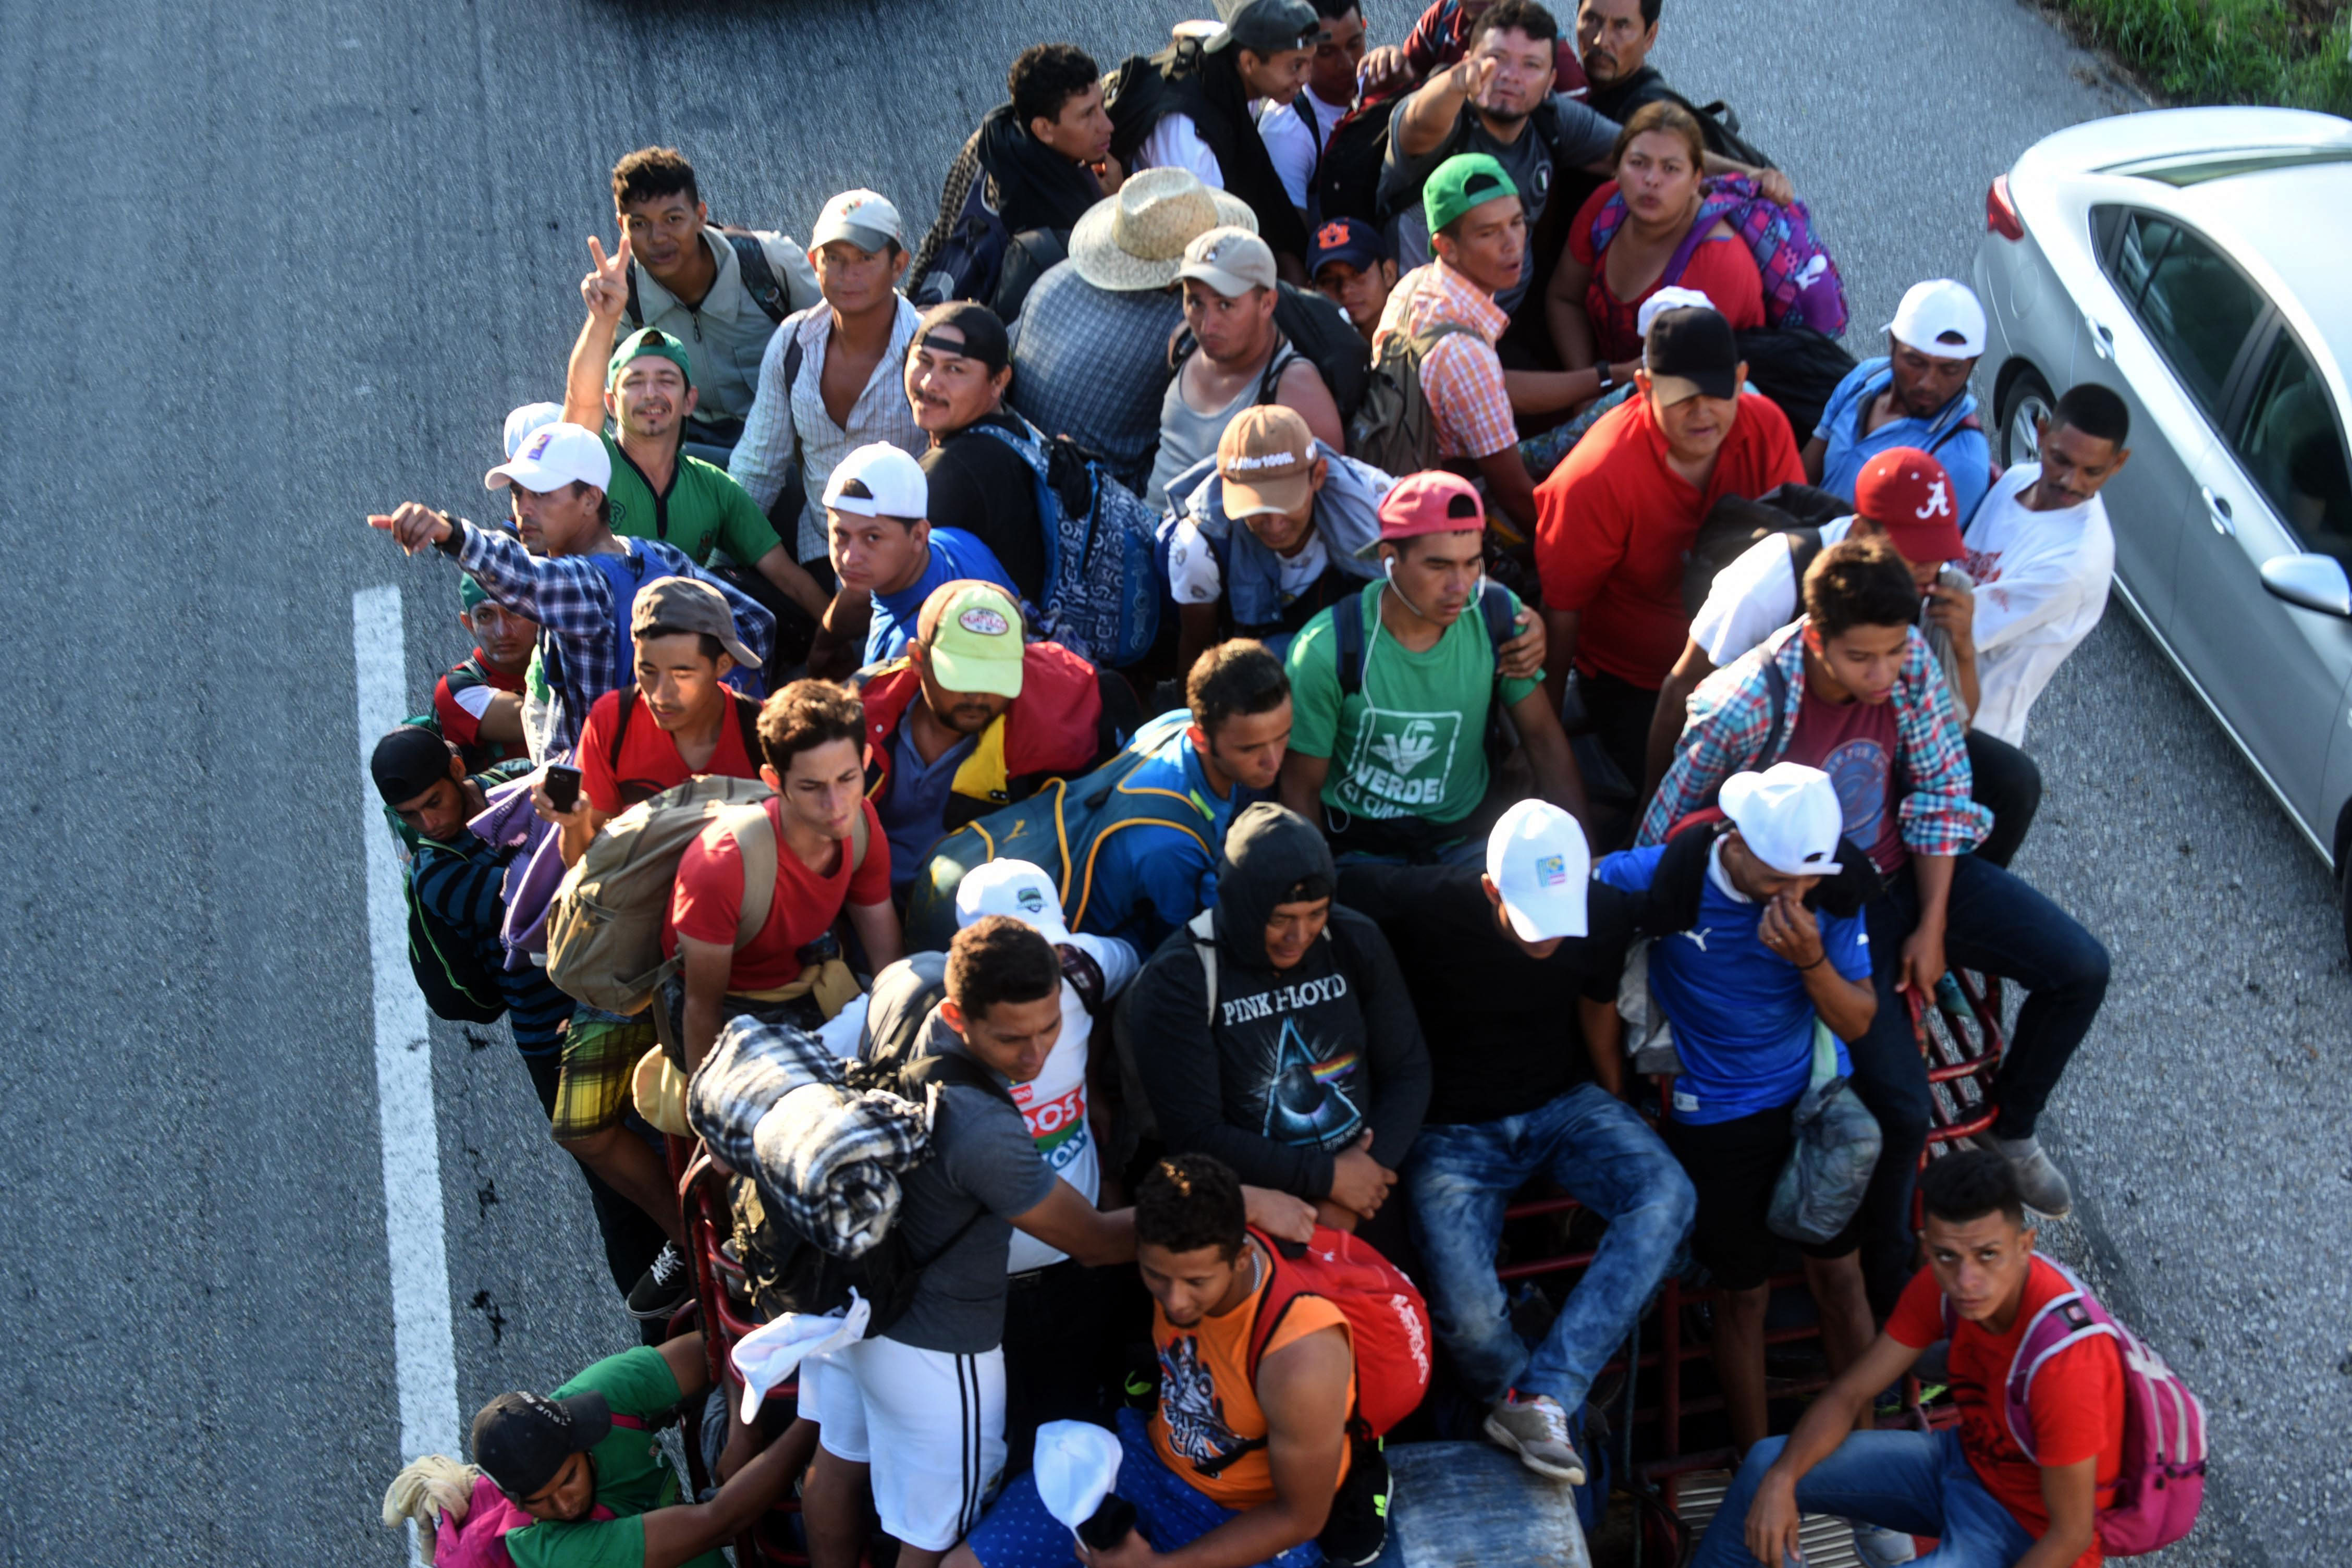 TOPSHOT - Honduran migrants heading in a caravan to the US, travel aboard a truck in Mapastepec on their way to Pijijiapan Chiapas state, Mexico, on October 25, 2018. - Thousands of Central American migrants crossing Mexico toward the United States in a caravan have resumed their long trek, walking about 12 hours to their next destination. (Photo by Johan ORDONEZ / AFP)